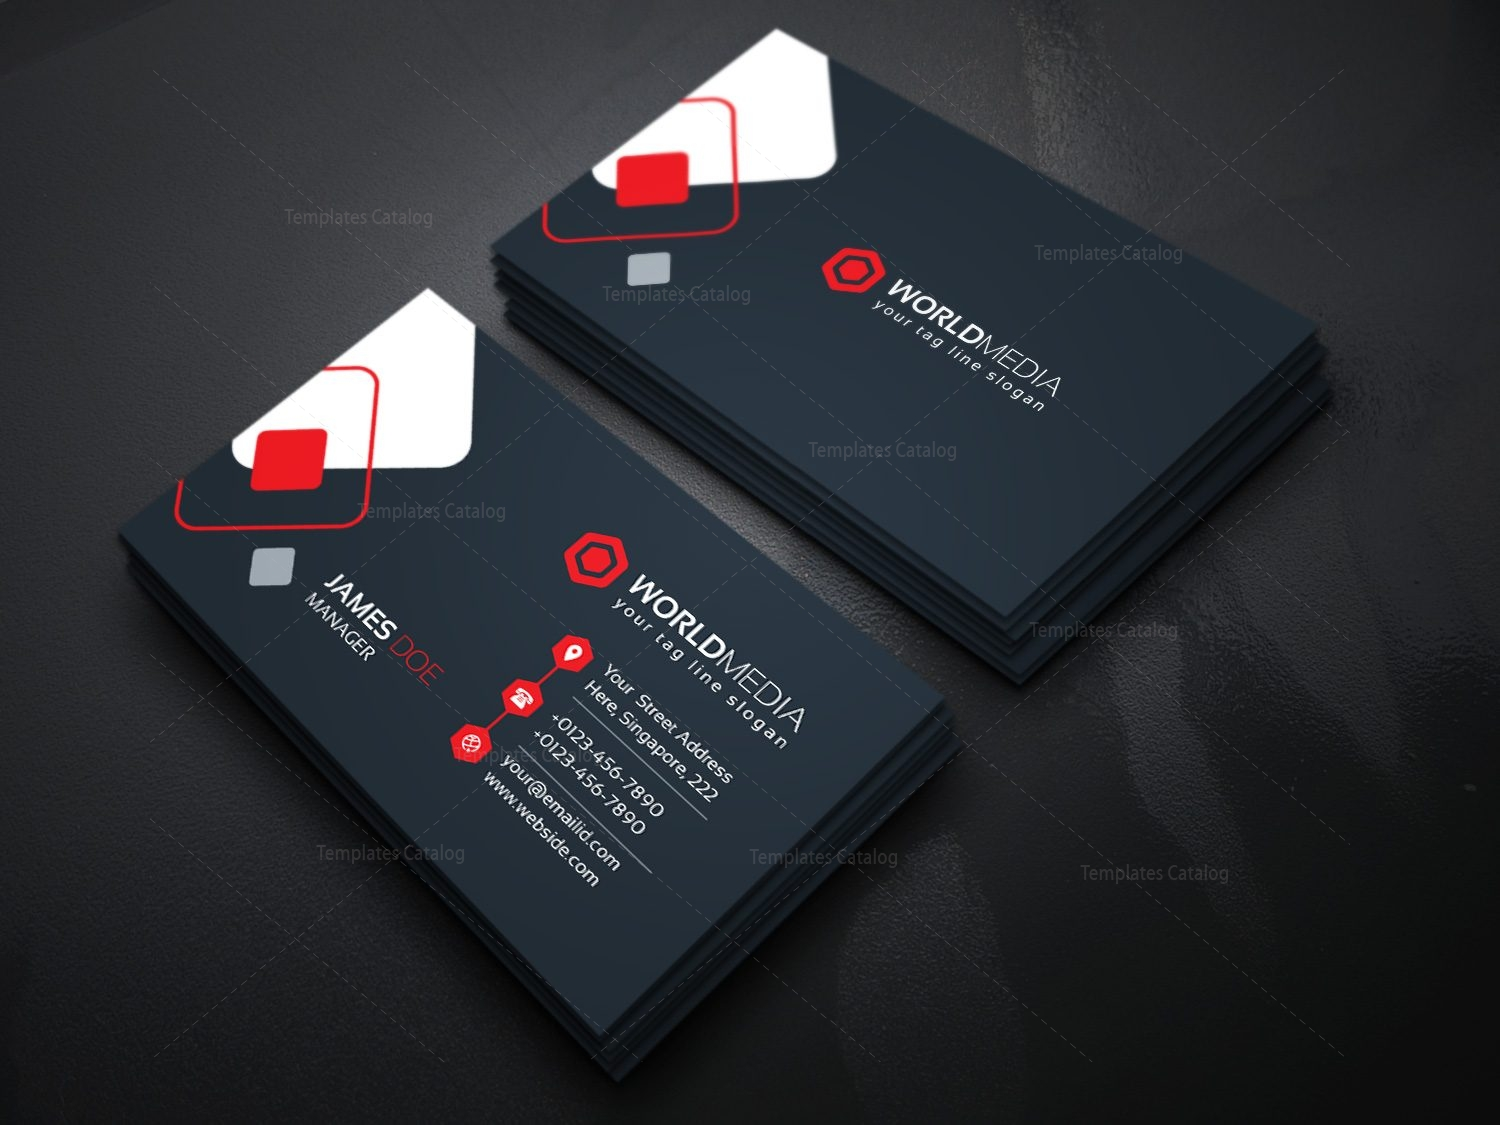 Business cards express melbourne images card design and card template business card express new jersey image collections card design and business cards express nj choice image reheart Gallery